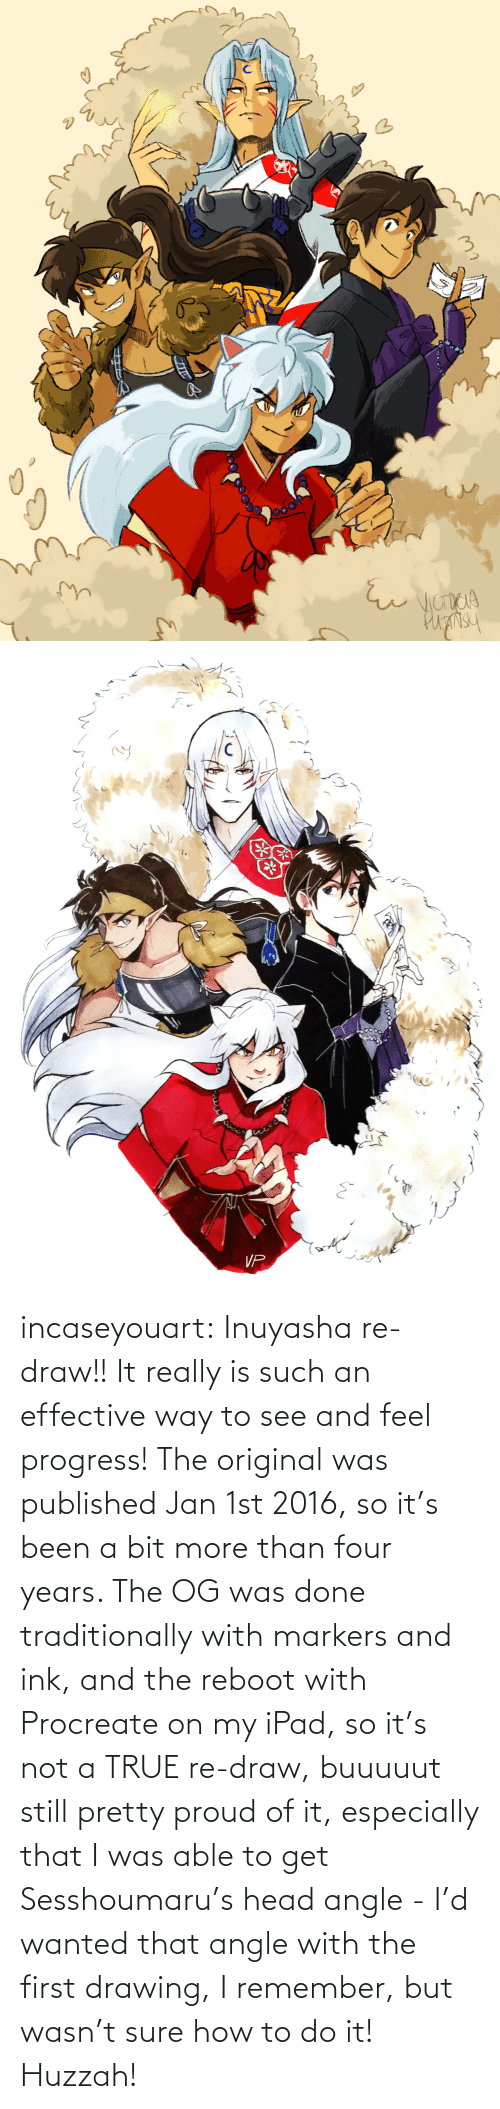 Head, Ipad, and Target: incaseyouart:  Inuyasha re-draw!! It really is such an effective way to see and feel progress! The original was published Jan 1st 2016, so it's been a bit more than four years. The OG was done traditionally with markers and ink, and the reboot with Procreate on my iPad, so it's not a TRUE re-draw, buuuuut still pretty proud of it, especially that I was able to get Sesshoumaru's head angle - I'd wanted that angle with the first drawing, I remember, but wasn't sure how to do it! Huzzah!